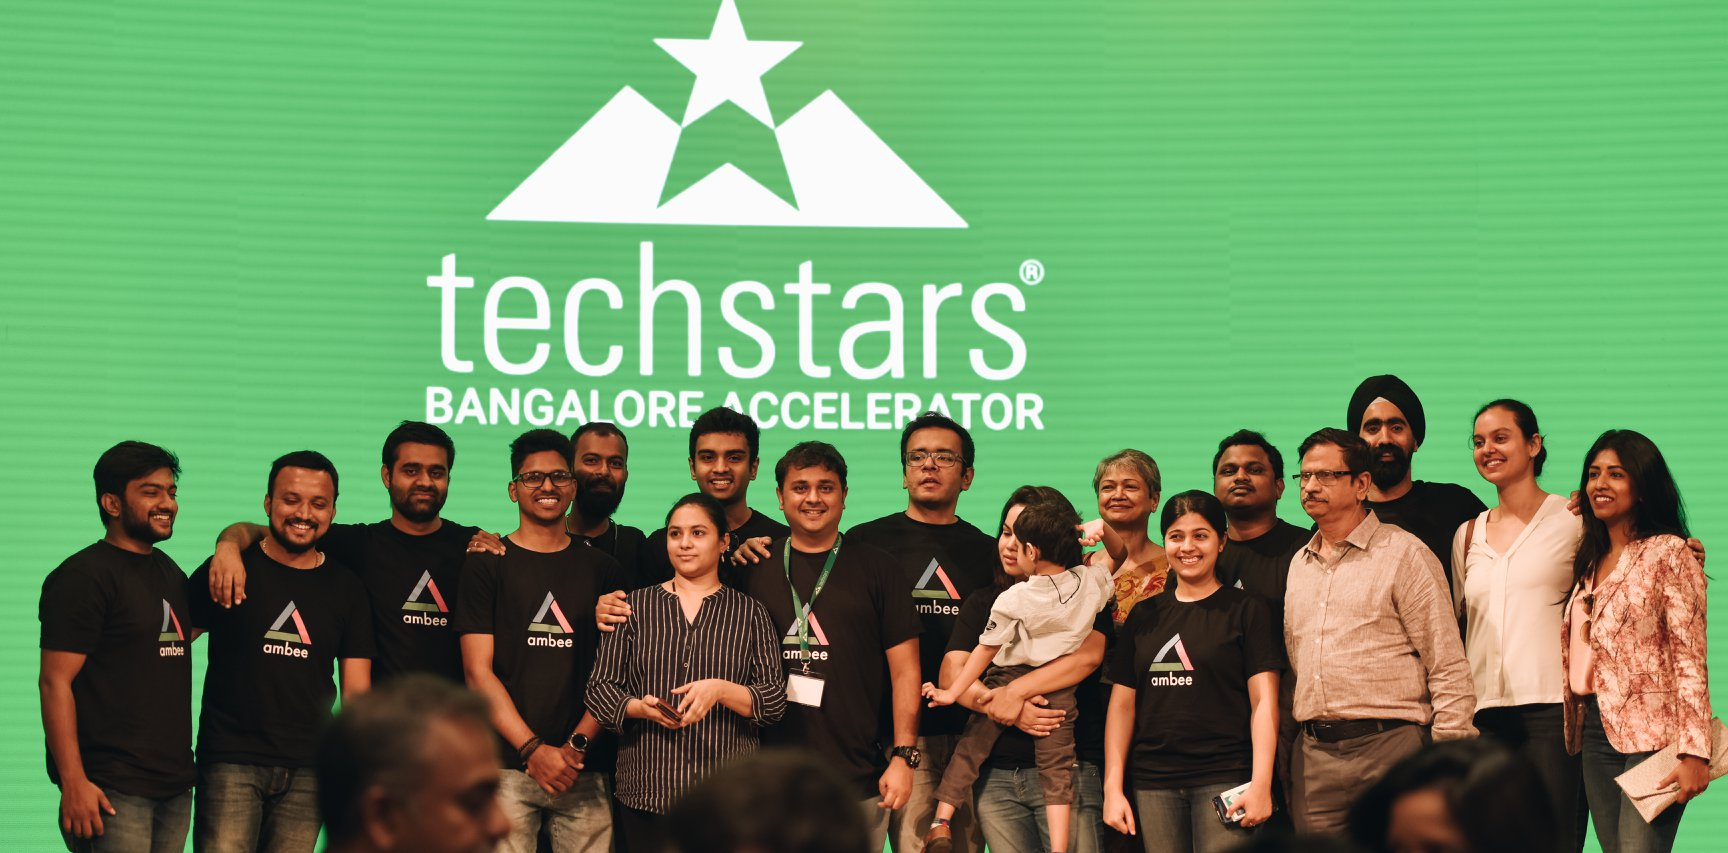 Team Ambee in techstars event standing in the stage